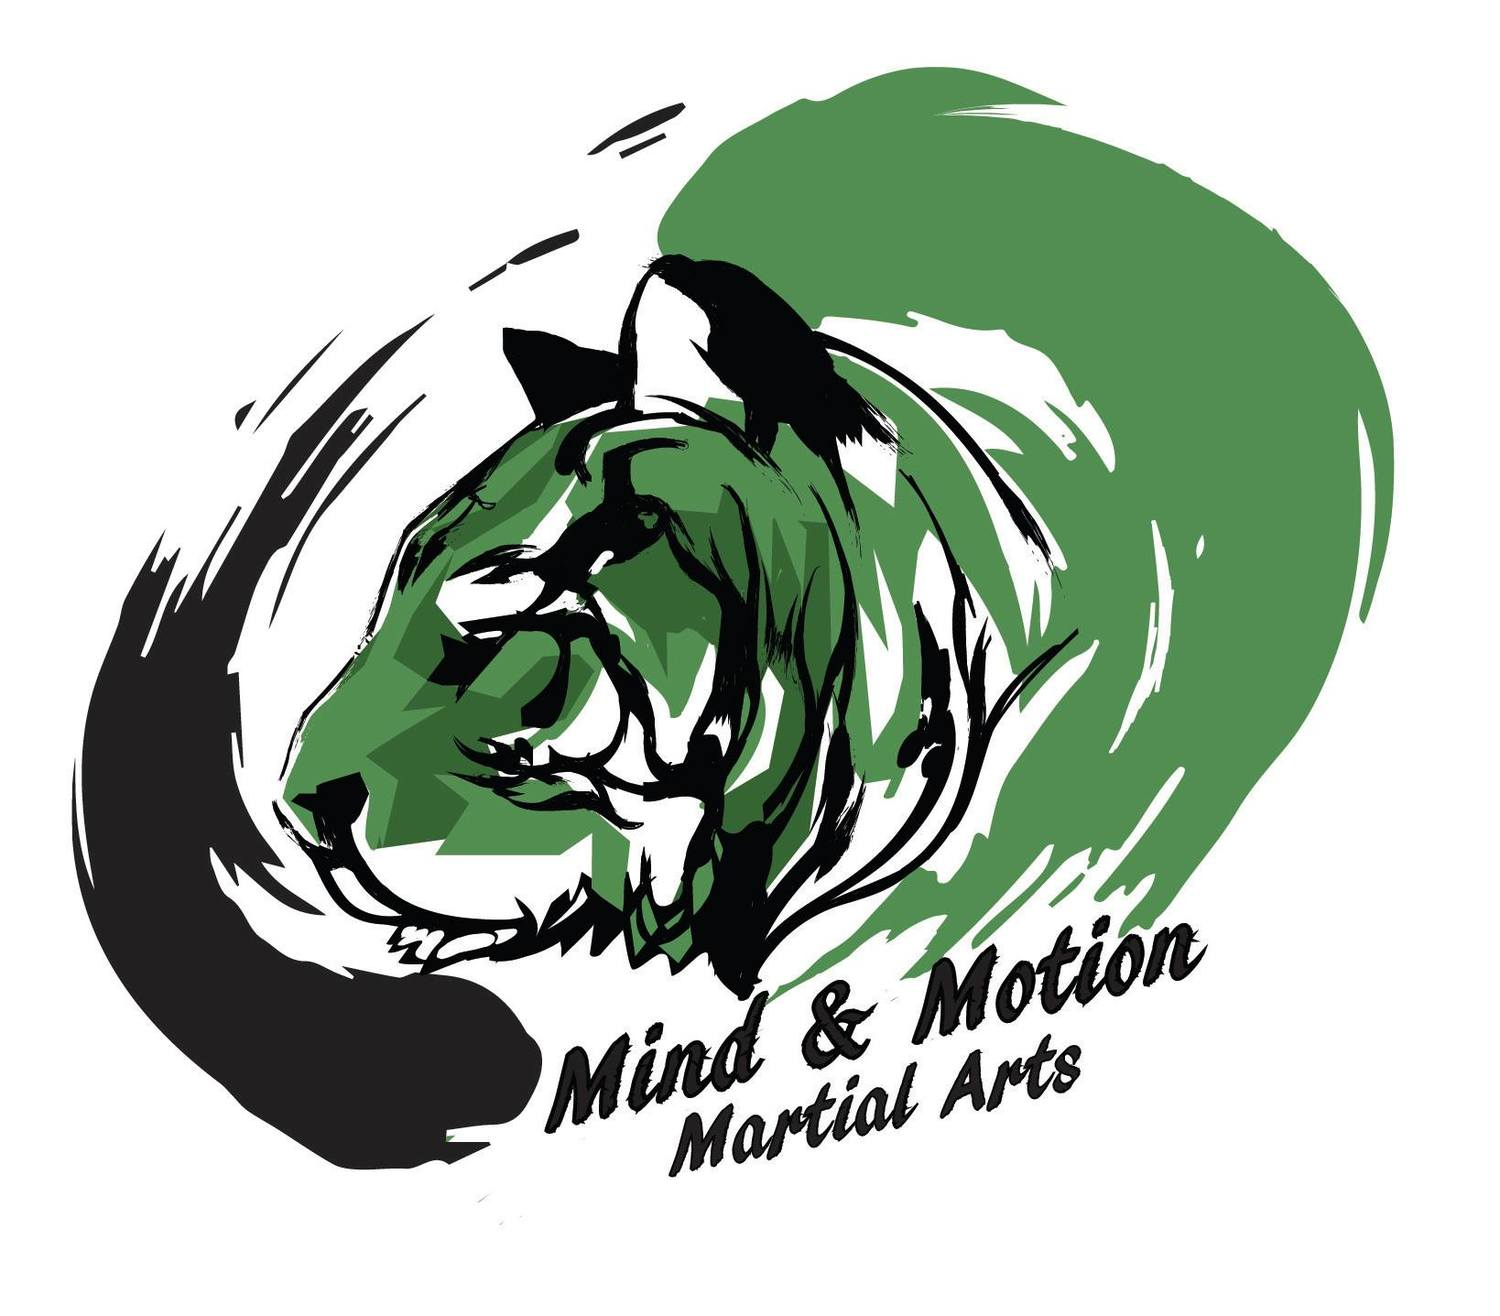 Mind and Motion Martial Arts